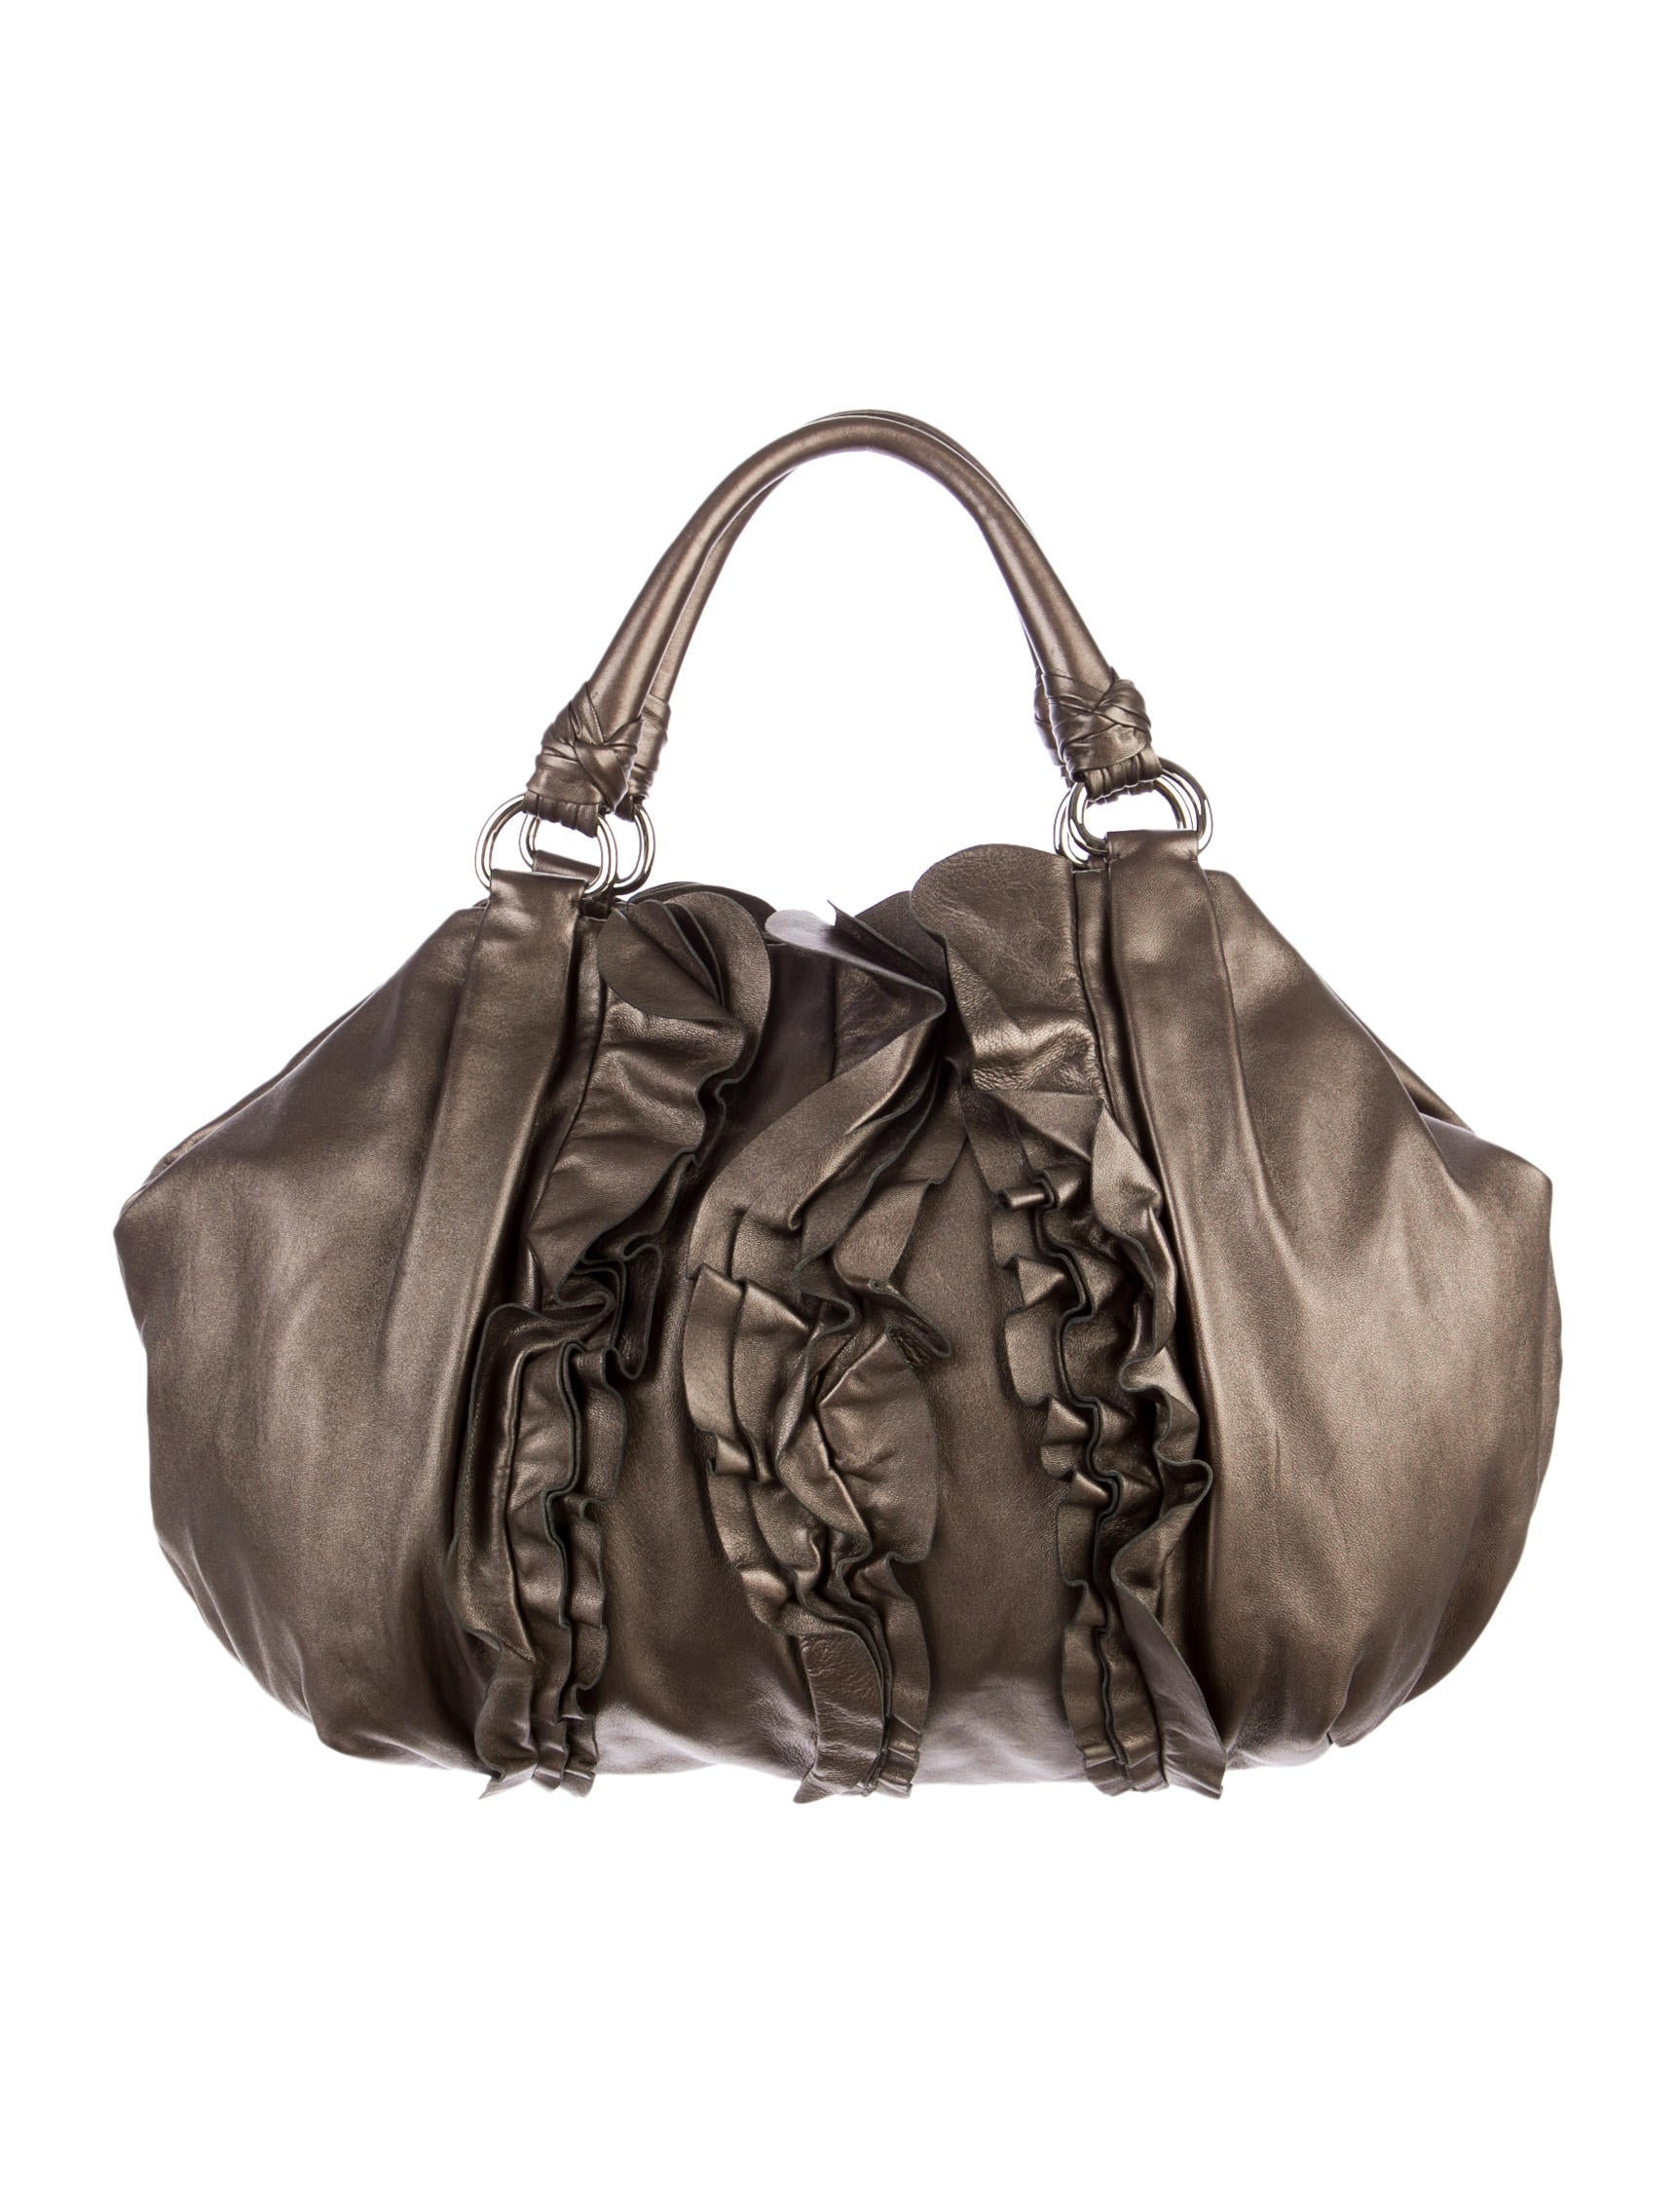 prada leather bags - prada ruffe-accented nappa handle bag, prada purse leather